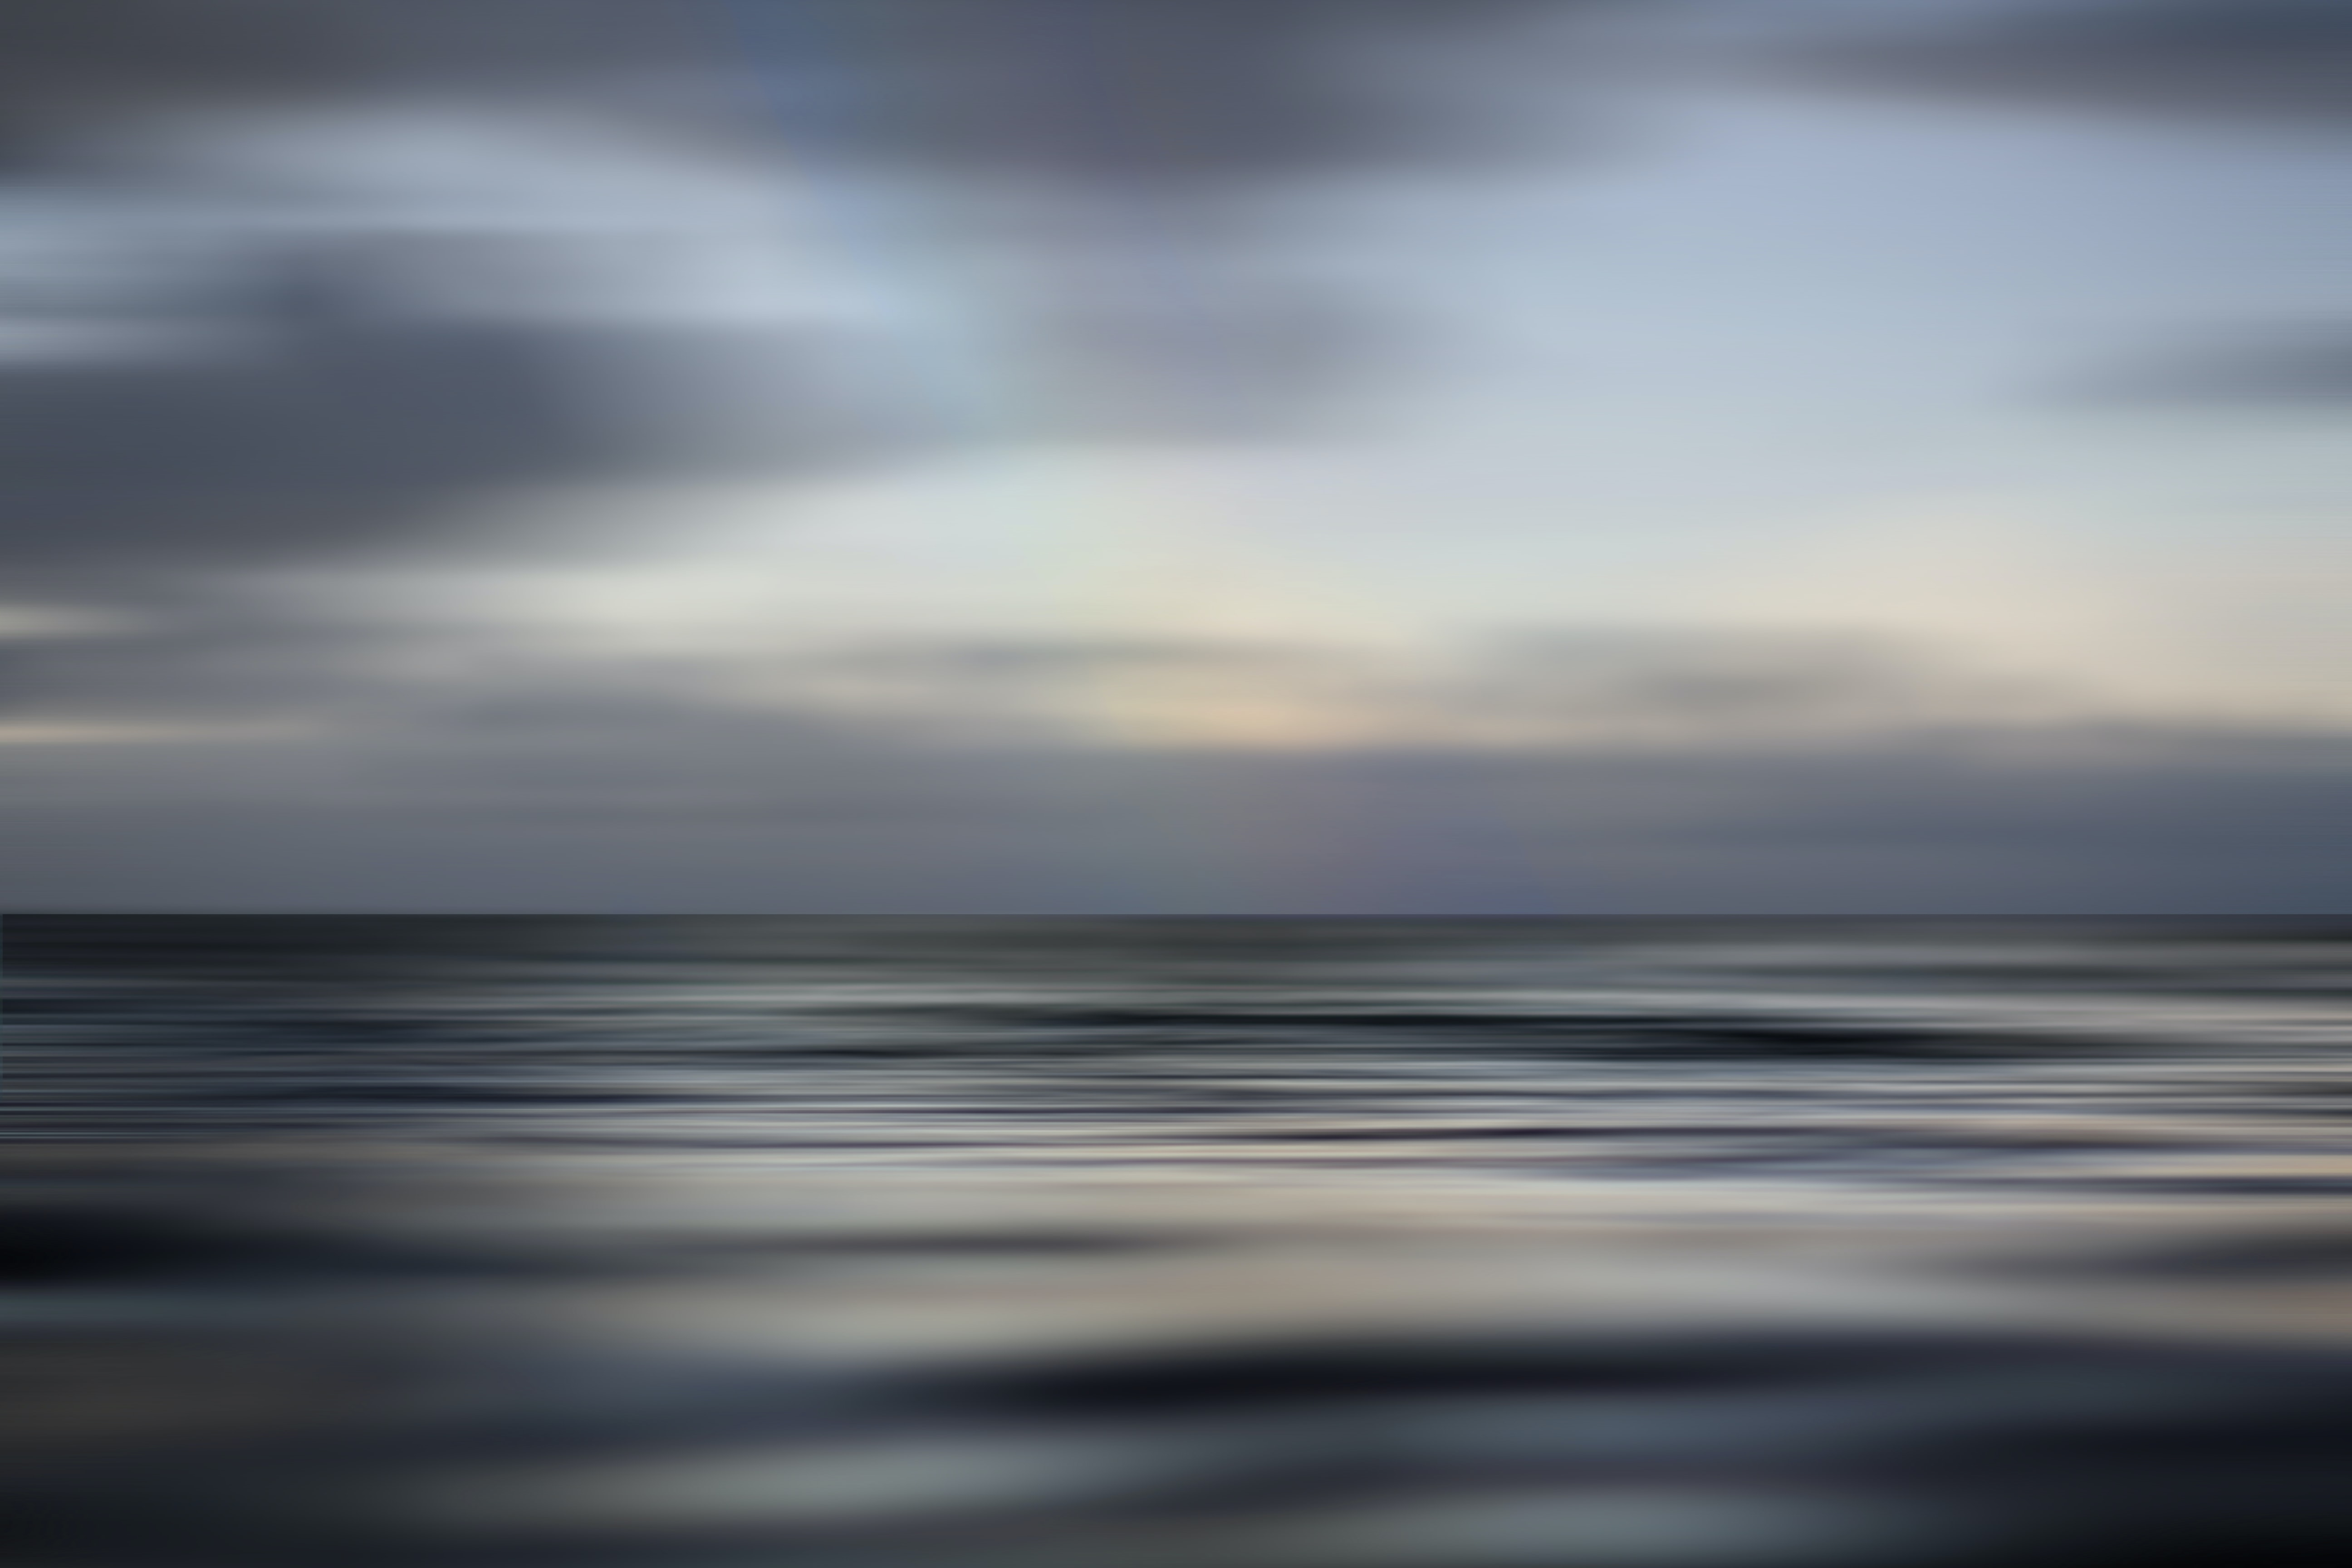 Calm ocean sea horizon shot with cloudy sky and reflection in Spring, Haleiwa